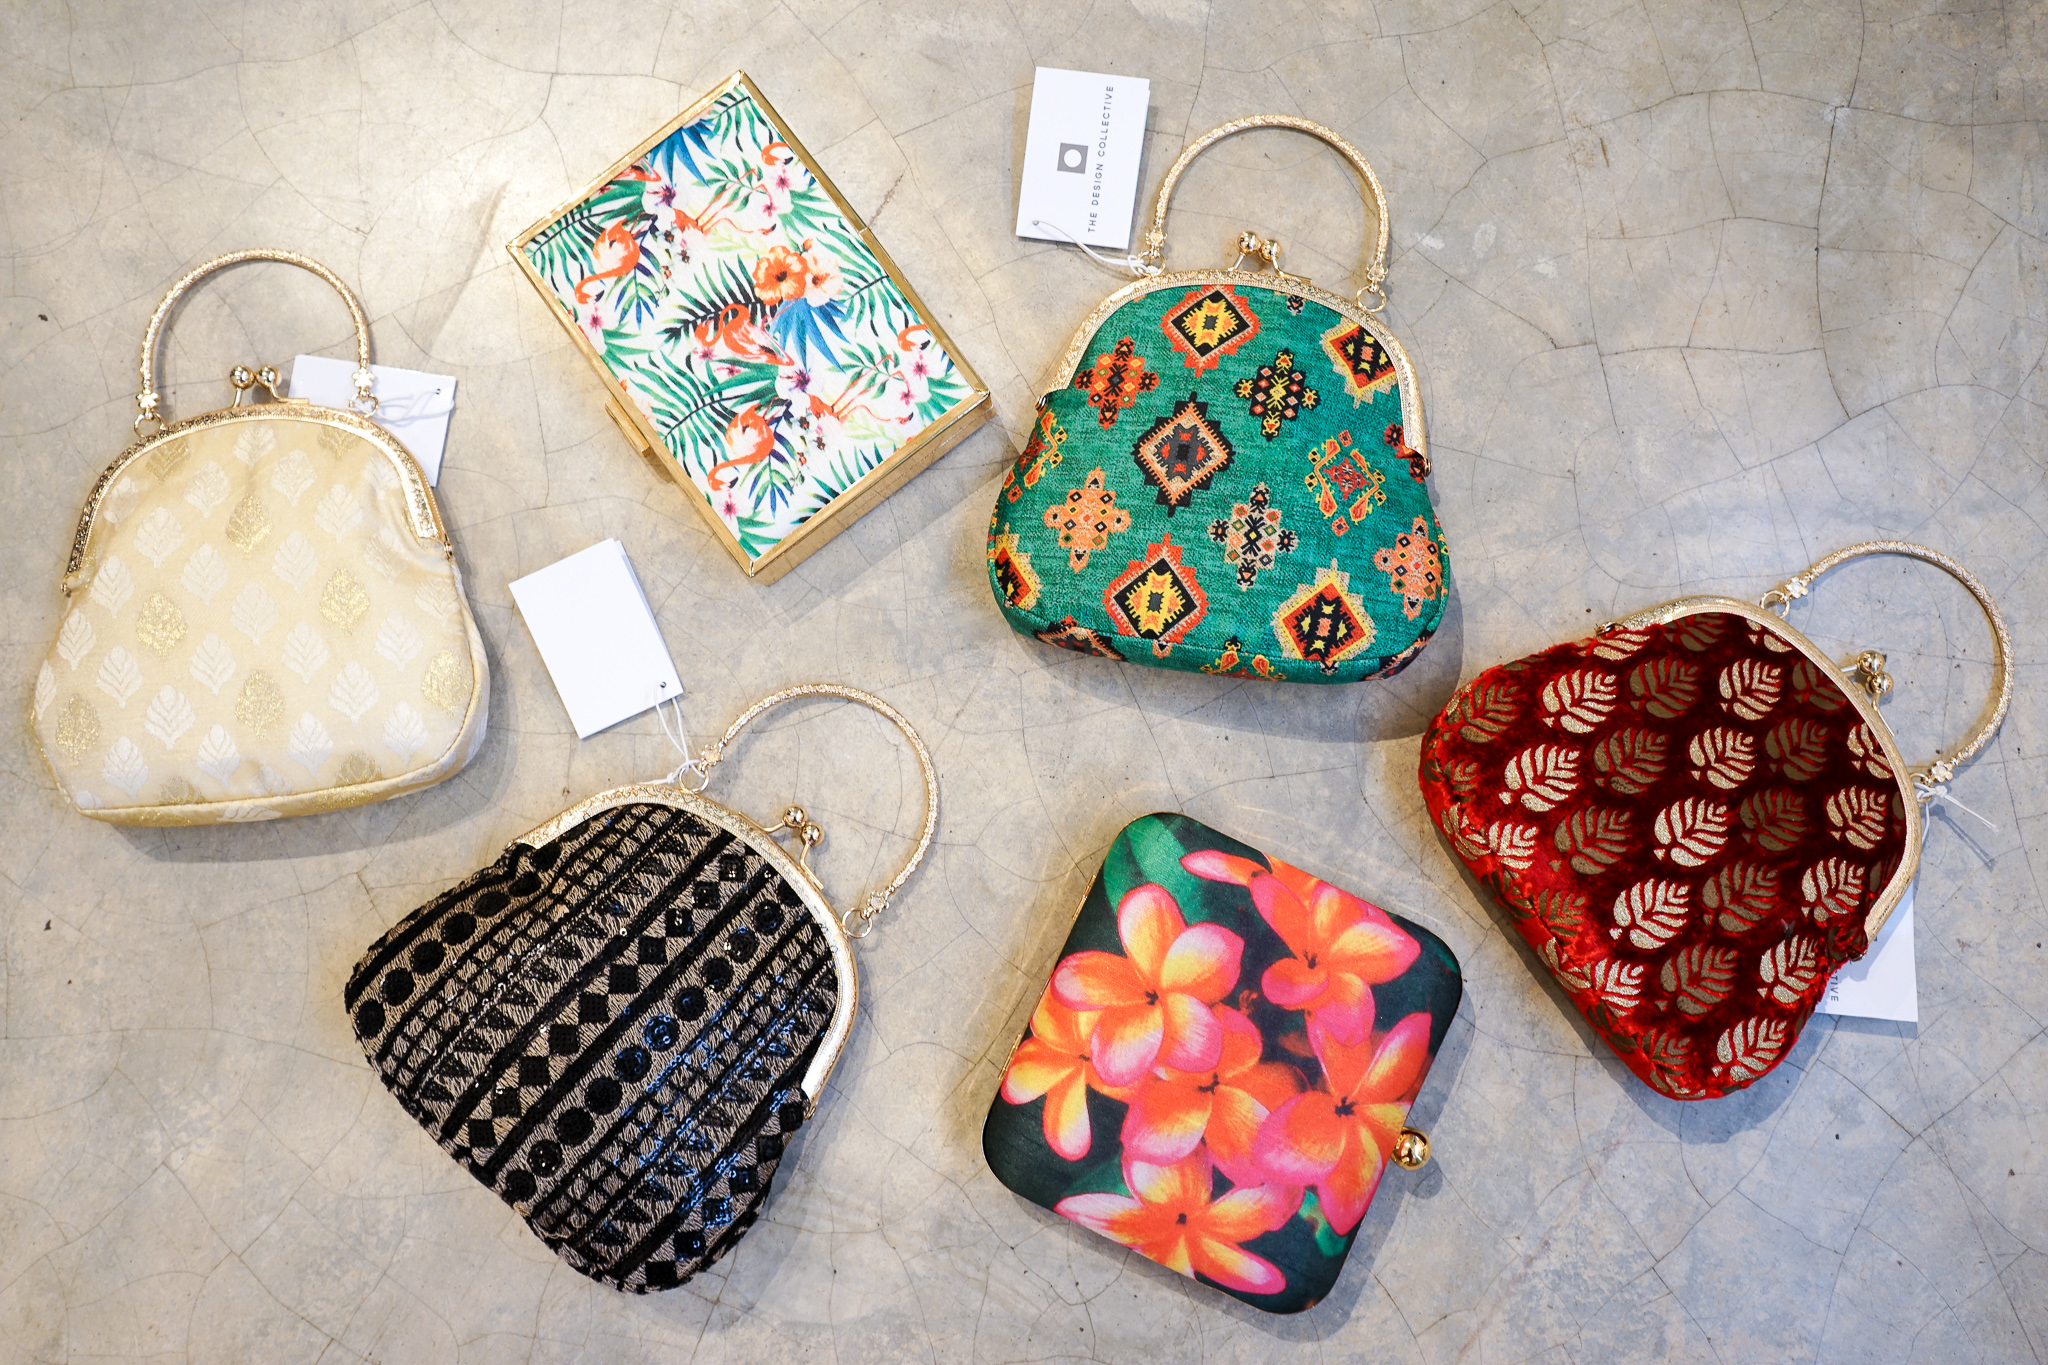 Colombo shopping guide - a selection of purses including Navya clutches at The Design Collective